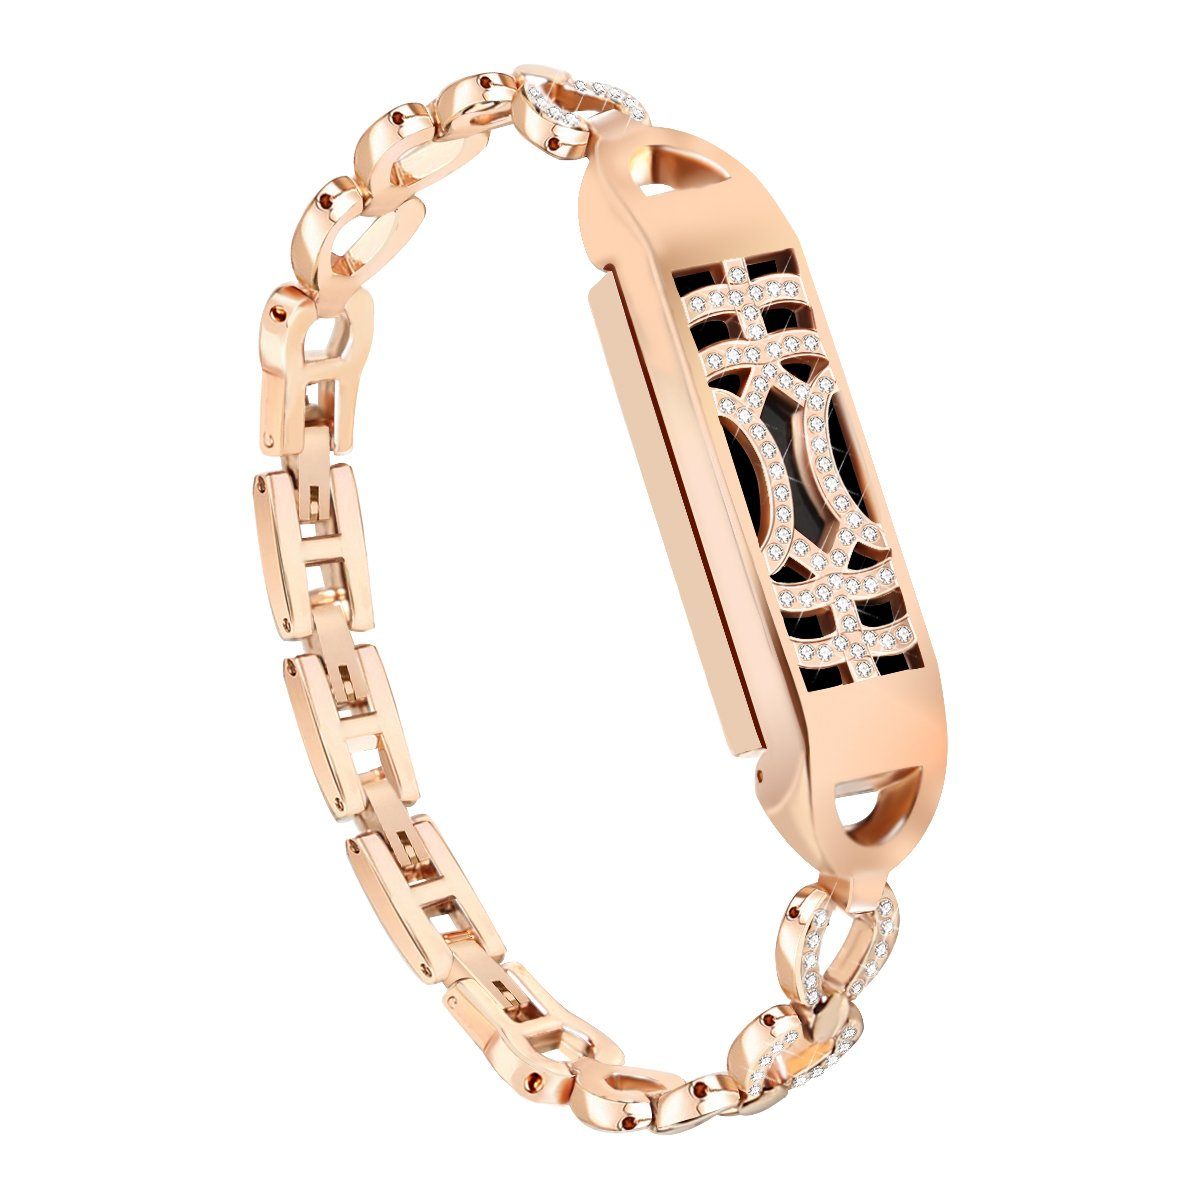 Stainless Steel For Fitbit Flex 2 Band Replacement Rose Gold Strap Bracelet Wristband (No Tracker) Small